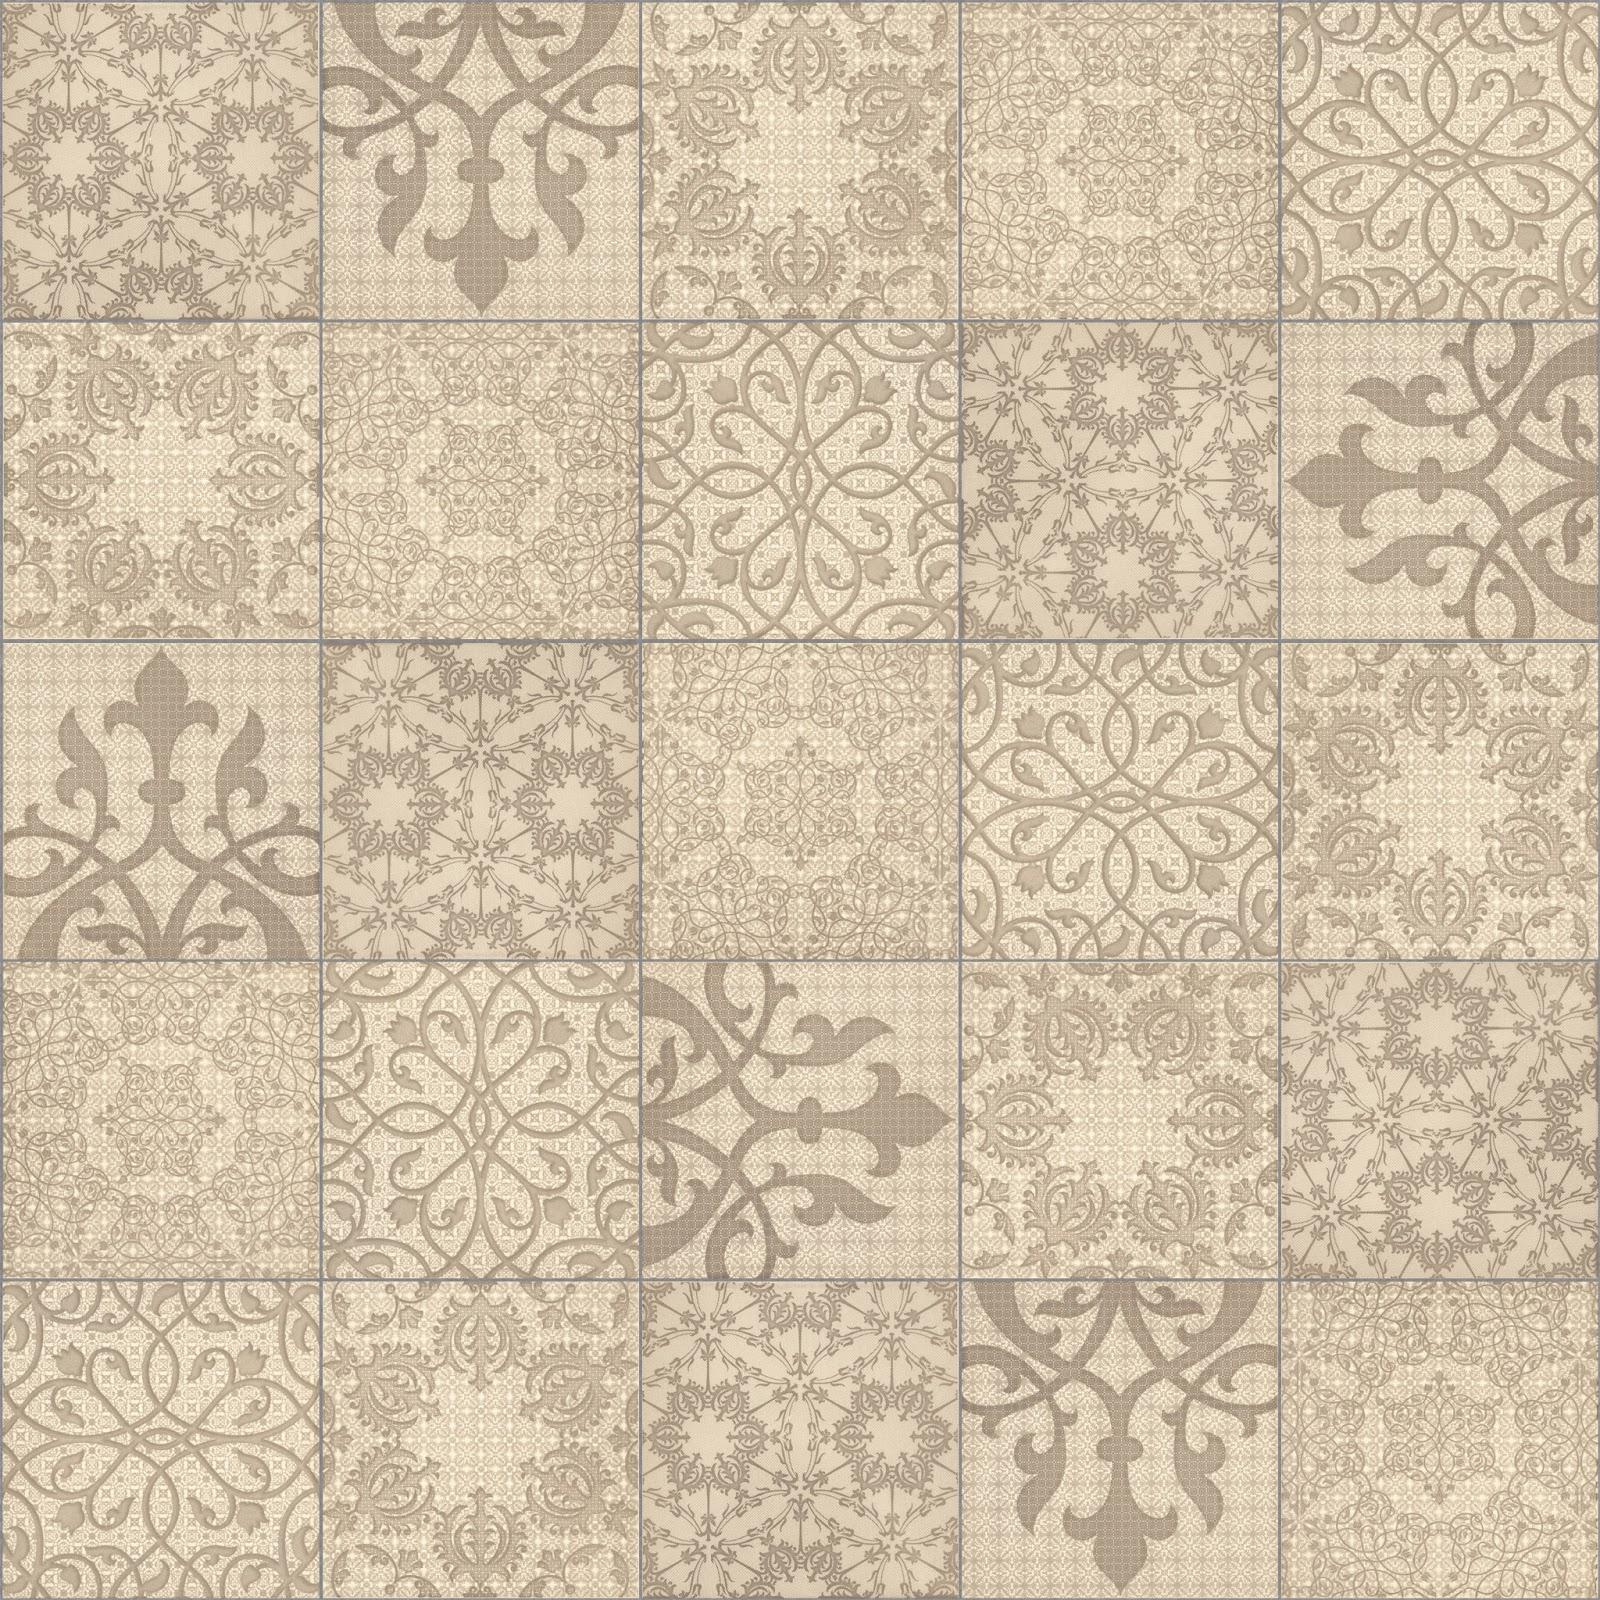 SKETCHUP TEXTURE: UPDATE NEW TILES TEXTURE